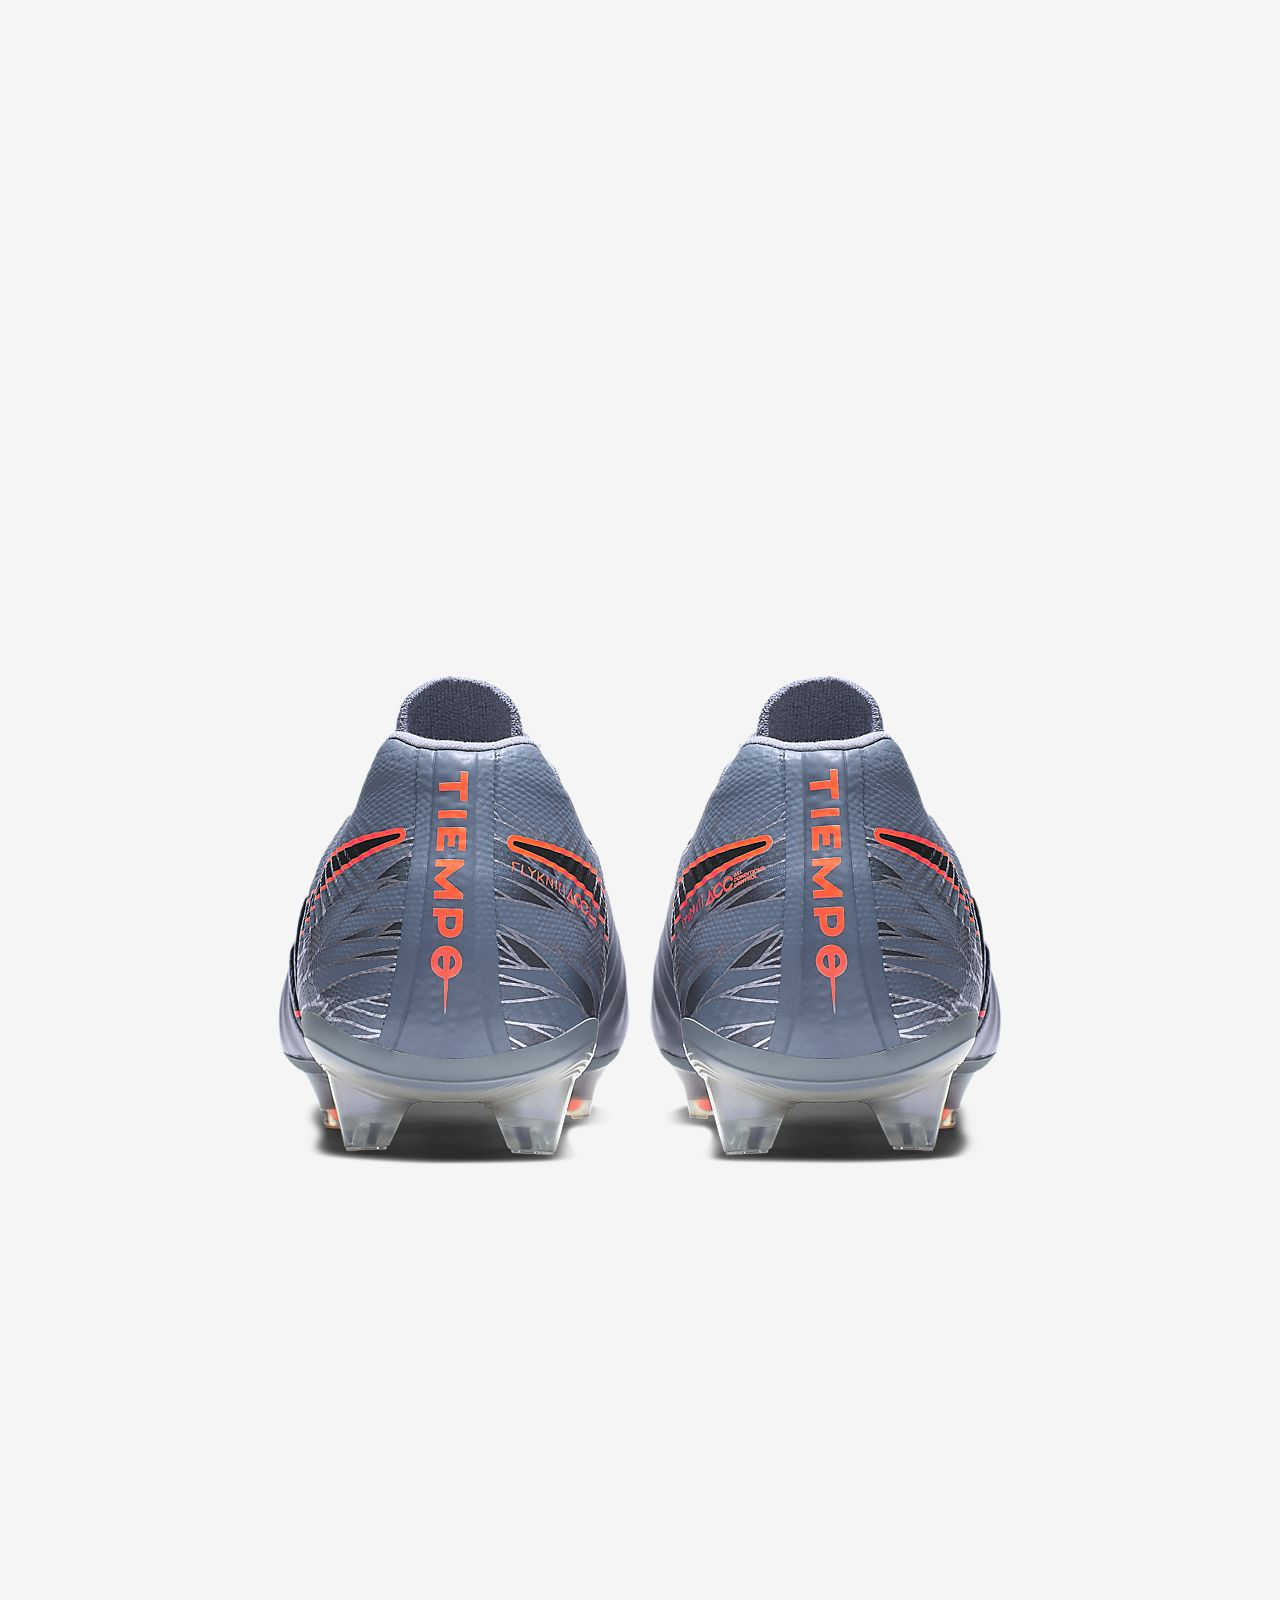 7f0aaad50da2 Nike Tiempo Legend 7 Elite FG Firm-Ground Soccer Cleat. Nike.com